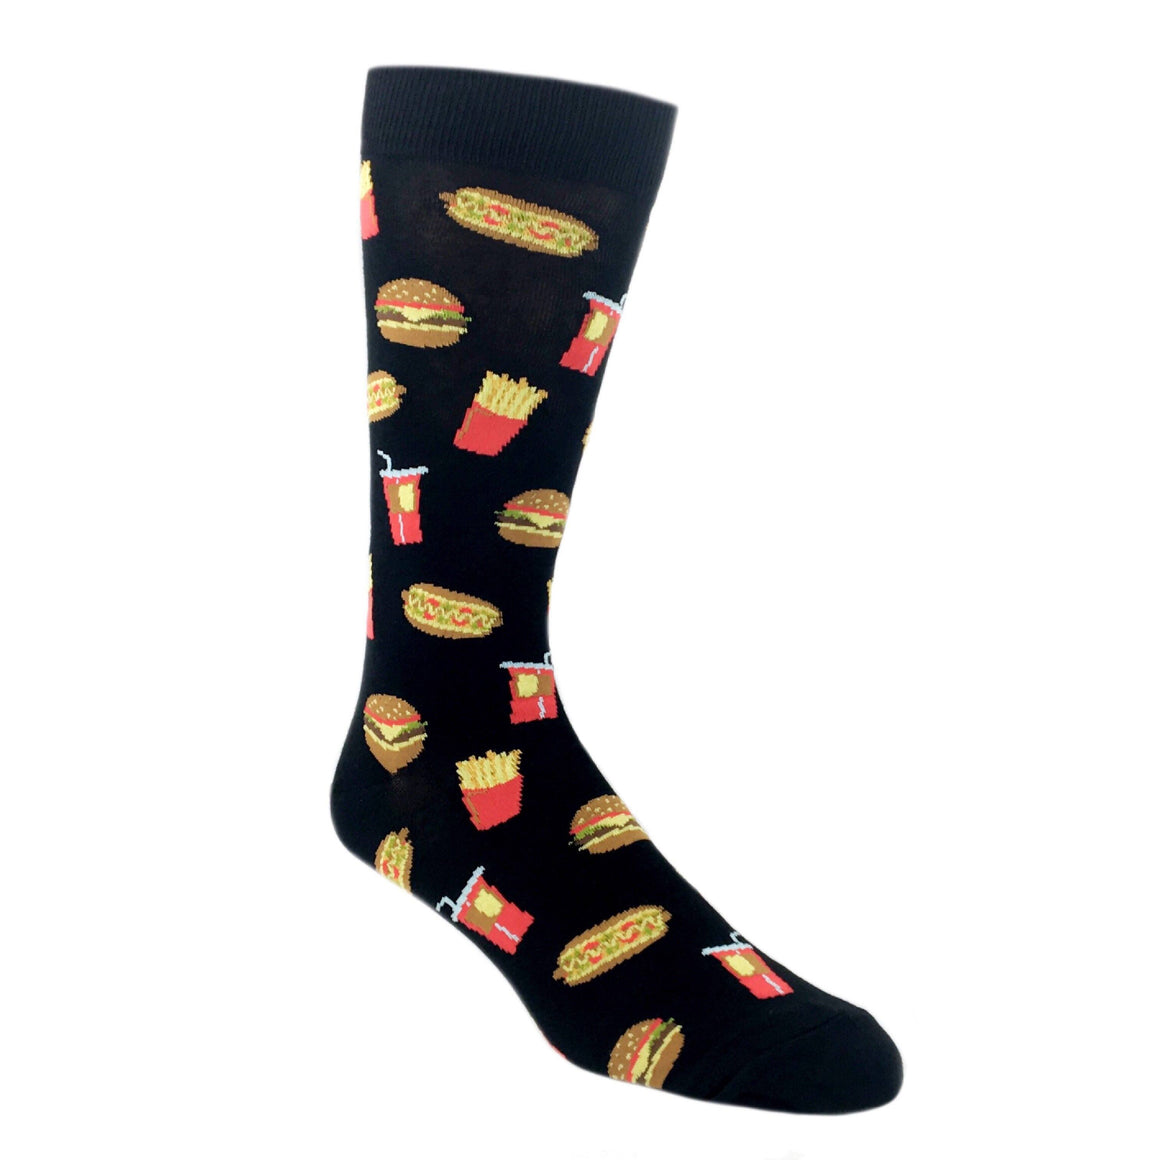 American Fast Food Socks by K.Bell - The Sock Spot